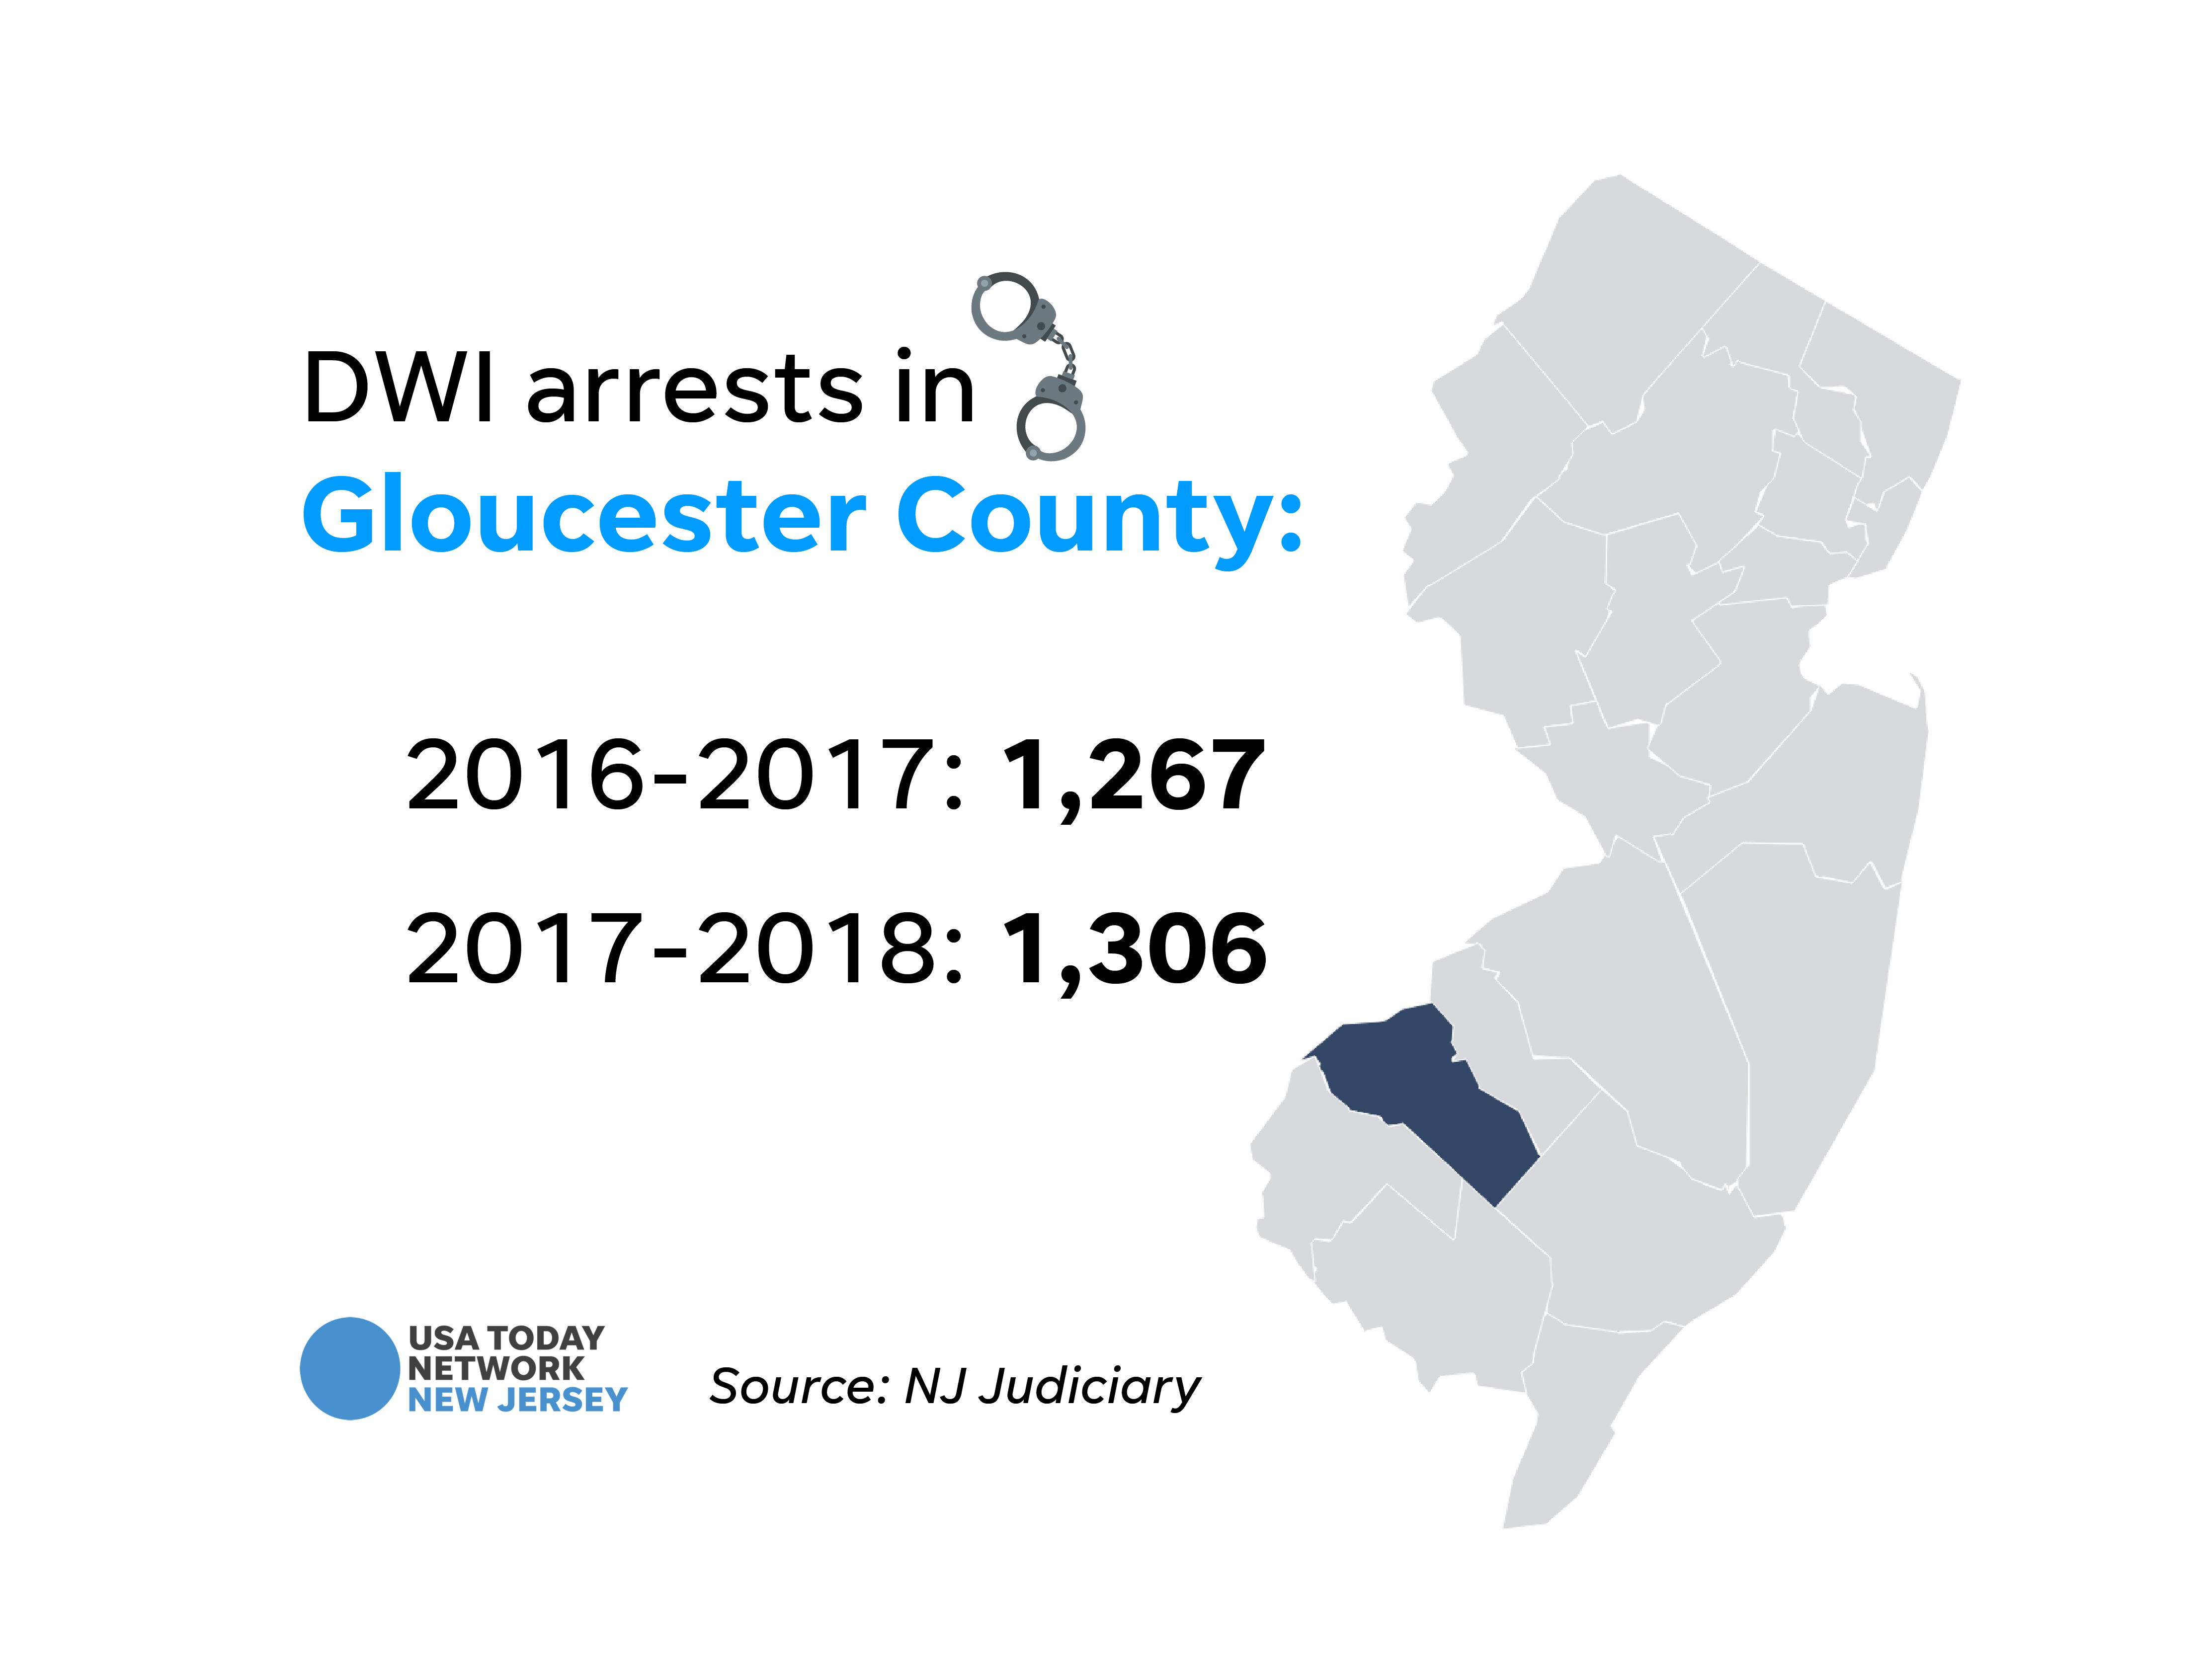 DWI arrests in Gloucester County.